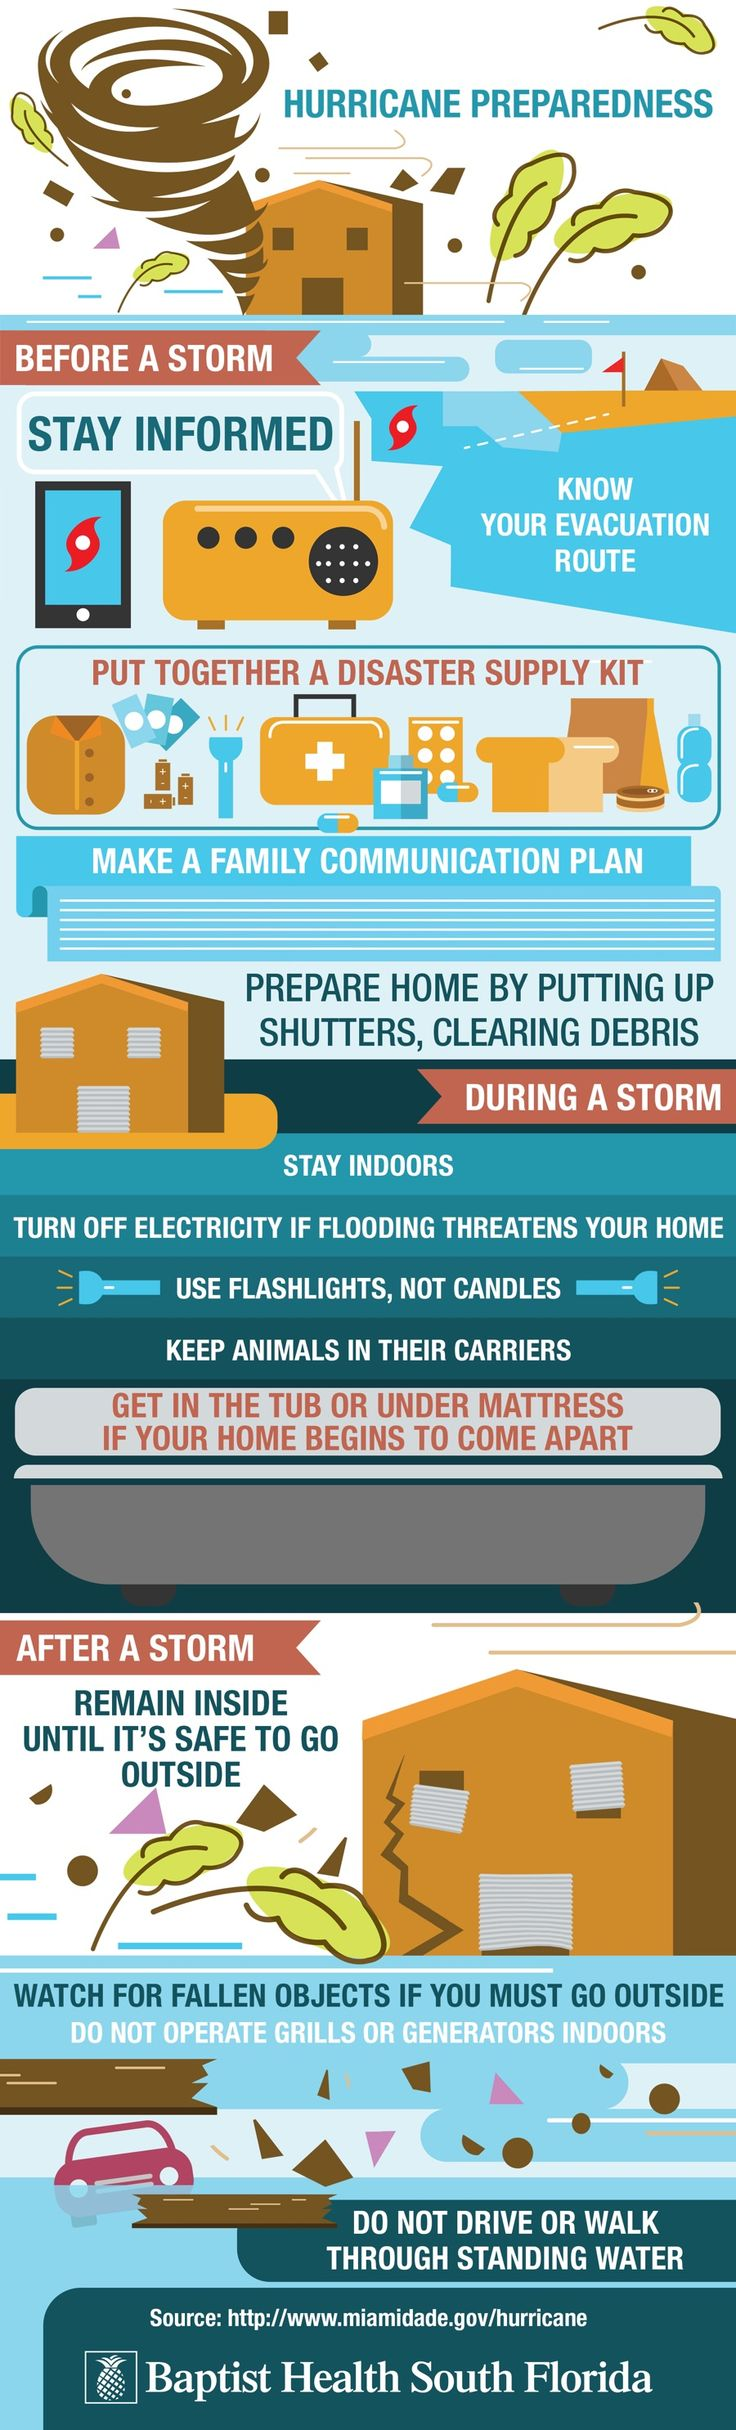 South Florida is monitoring #Hurricane Irma as it approaches rapidly.     For more information and safety tips please visit miamidade.gov/hurricane.    Please visit miamidade.gov/emergency for the latest information on openings and closings in Miami-Dade County.